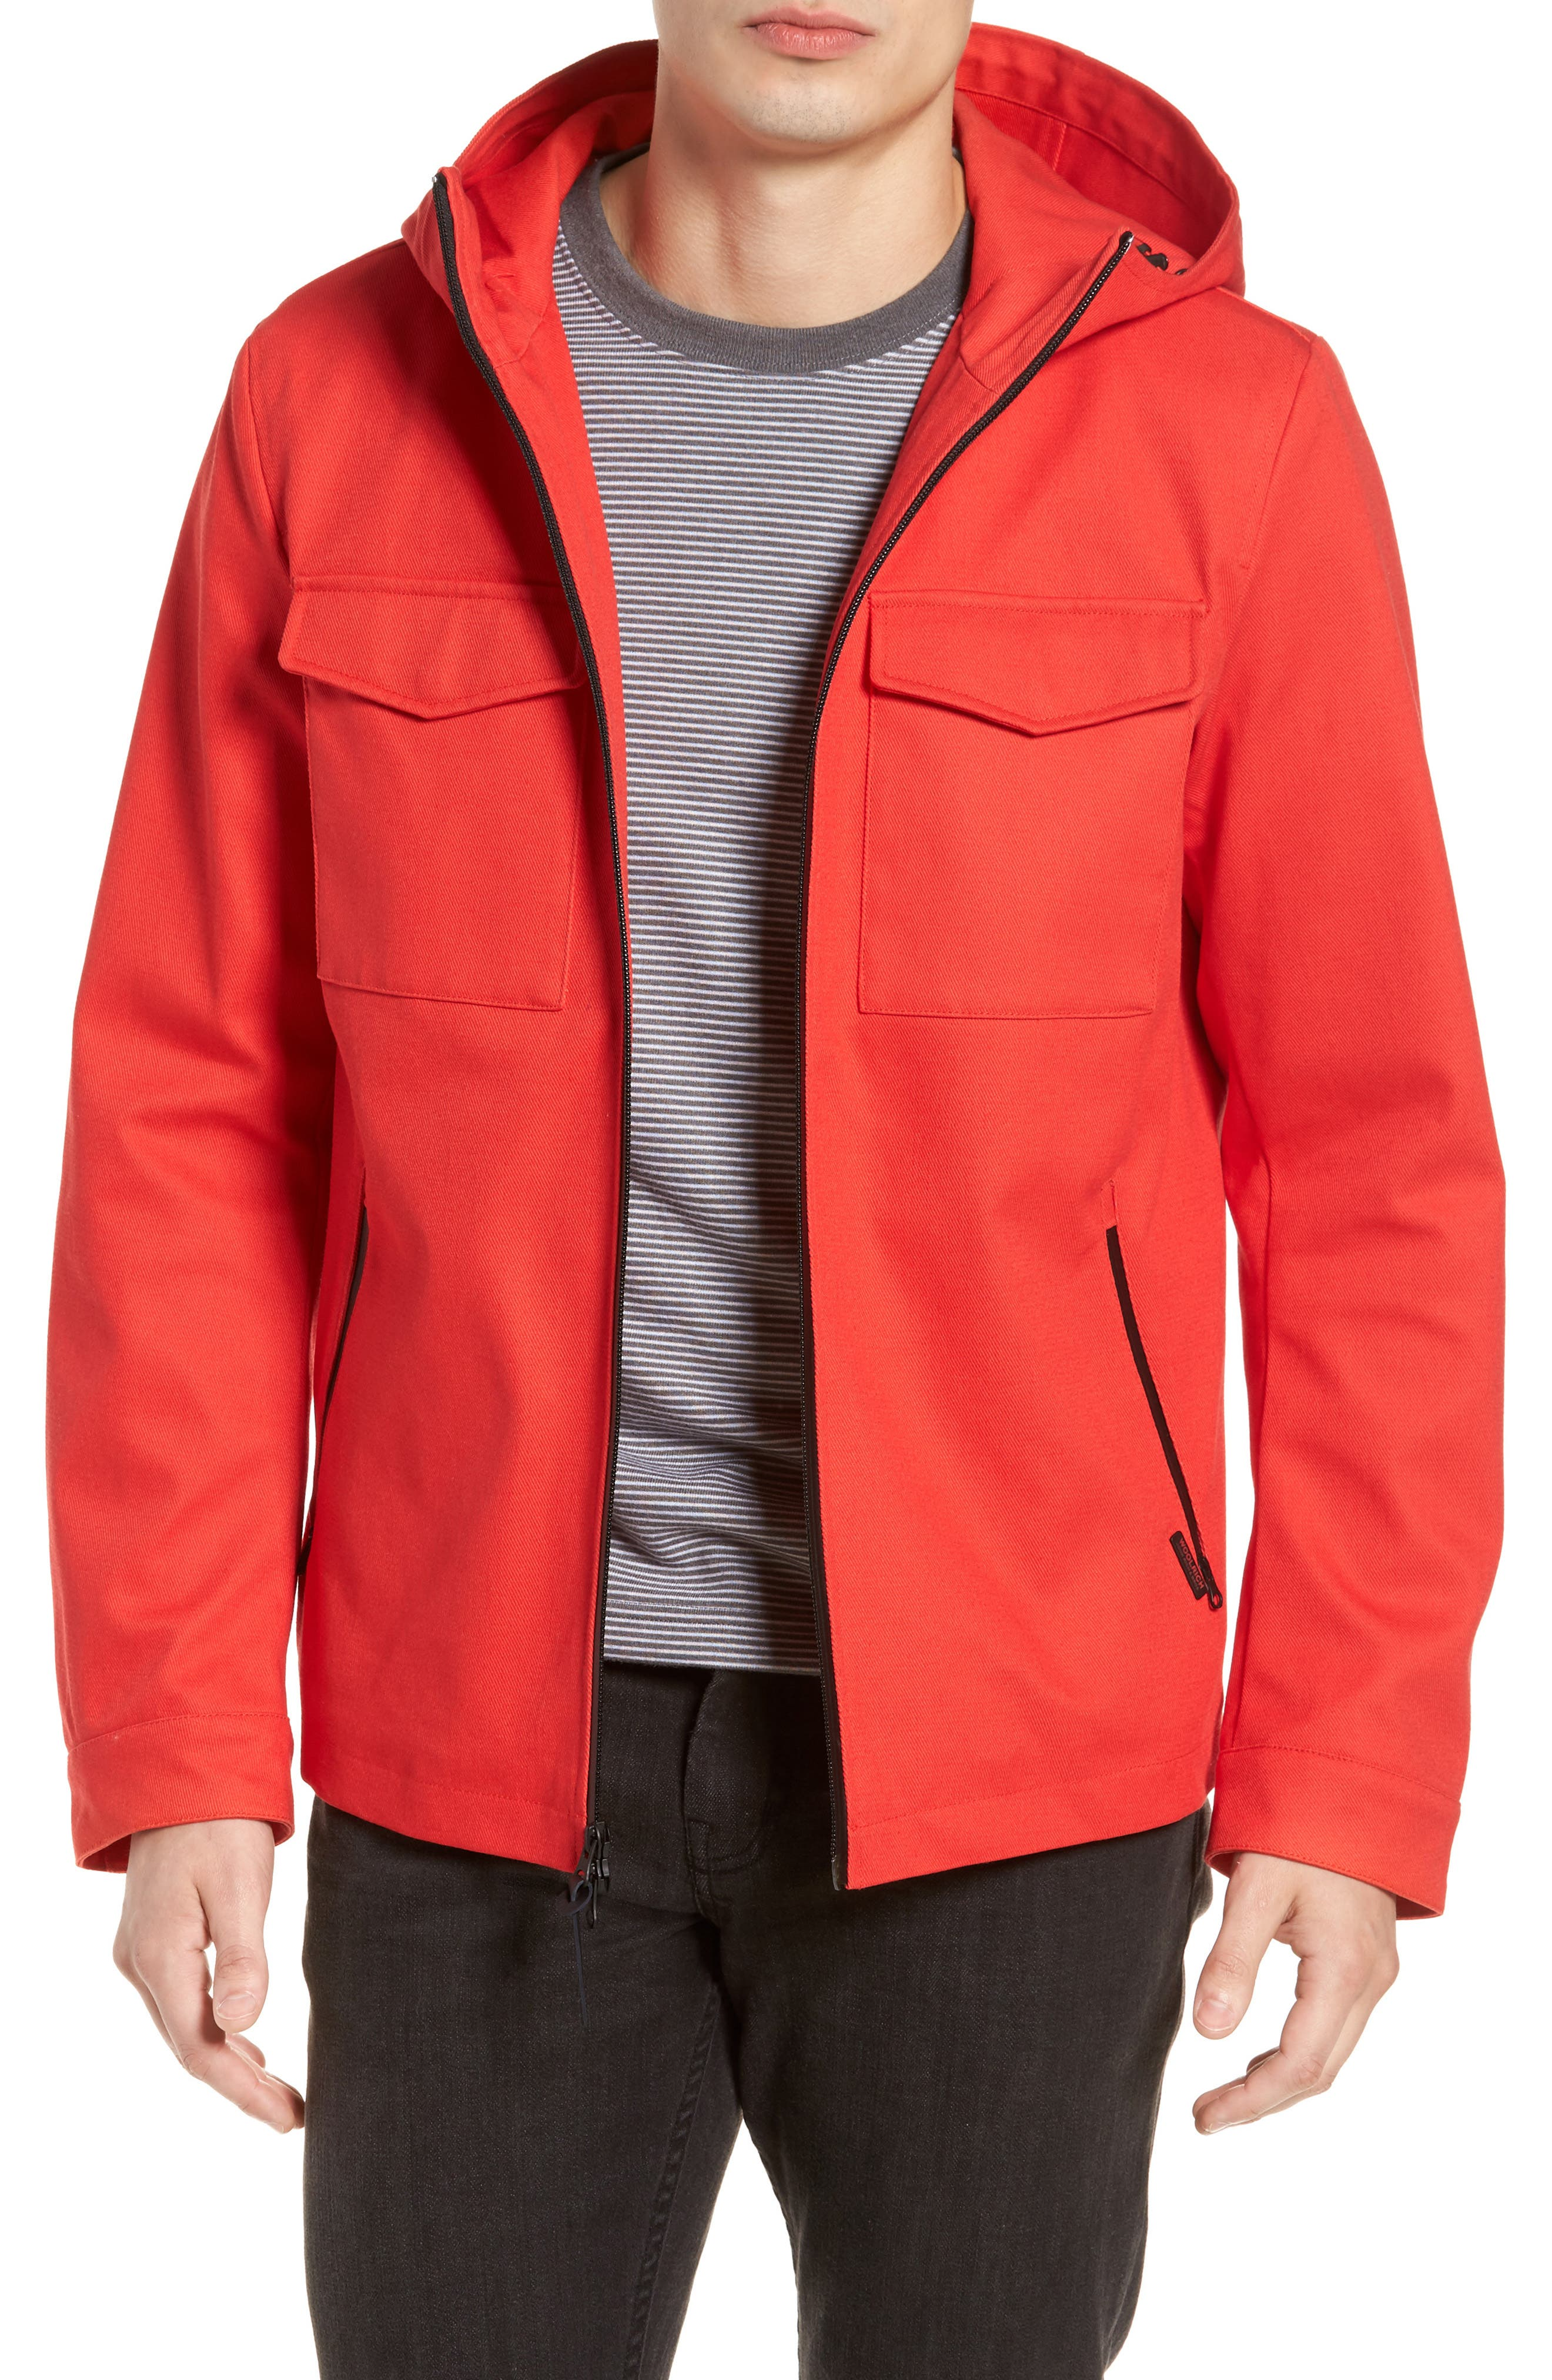 & Bros. Crew Field Jacket,                             Main thumbnail 1, color,                             Aurora Red